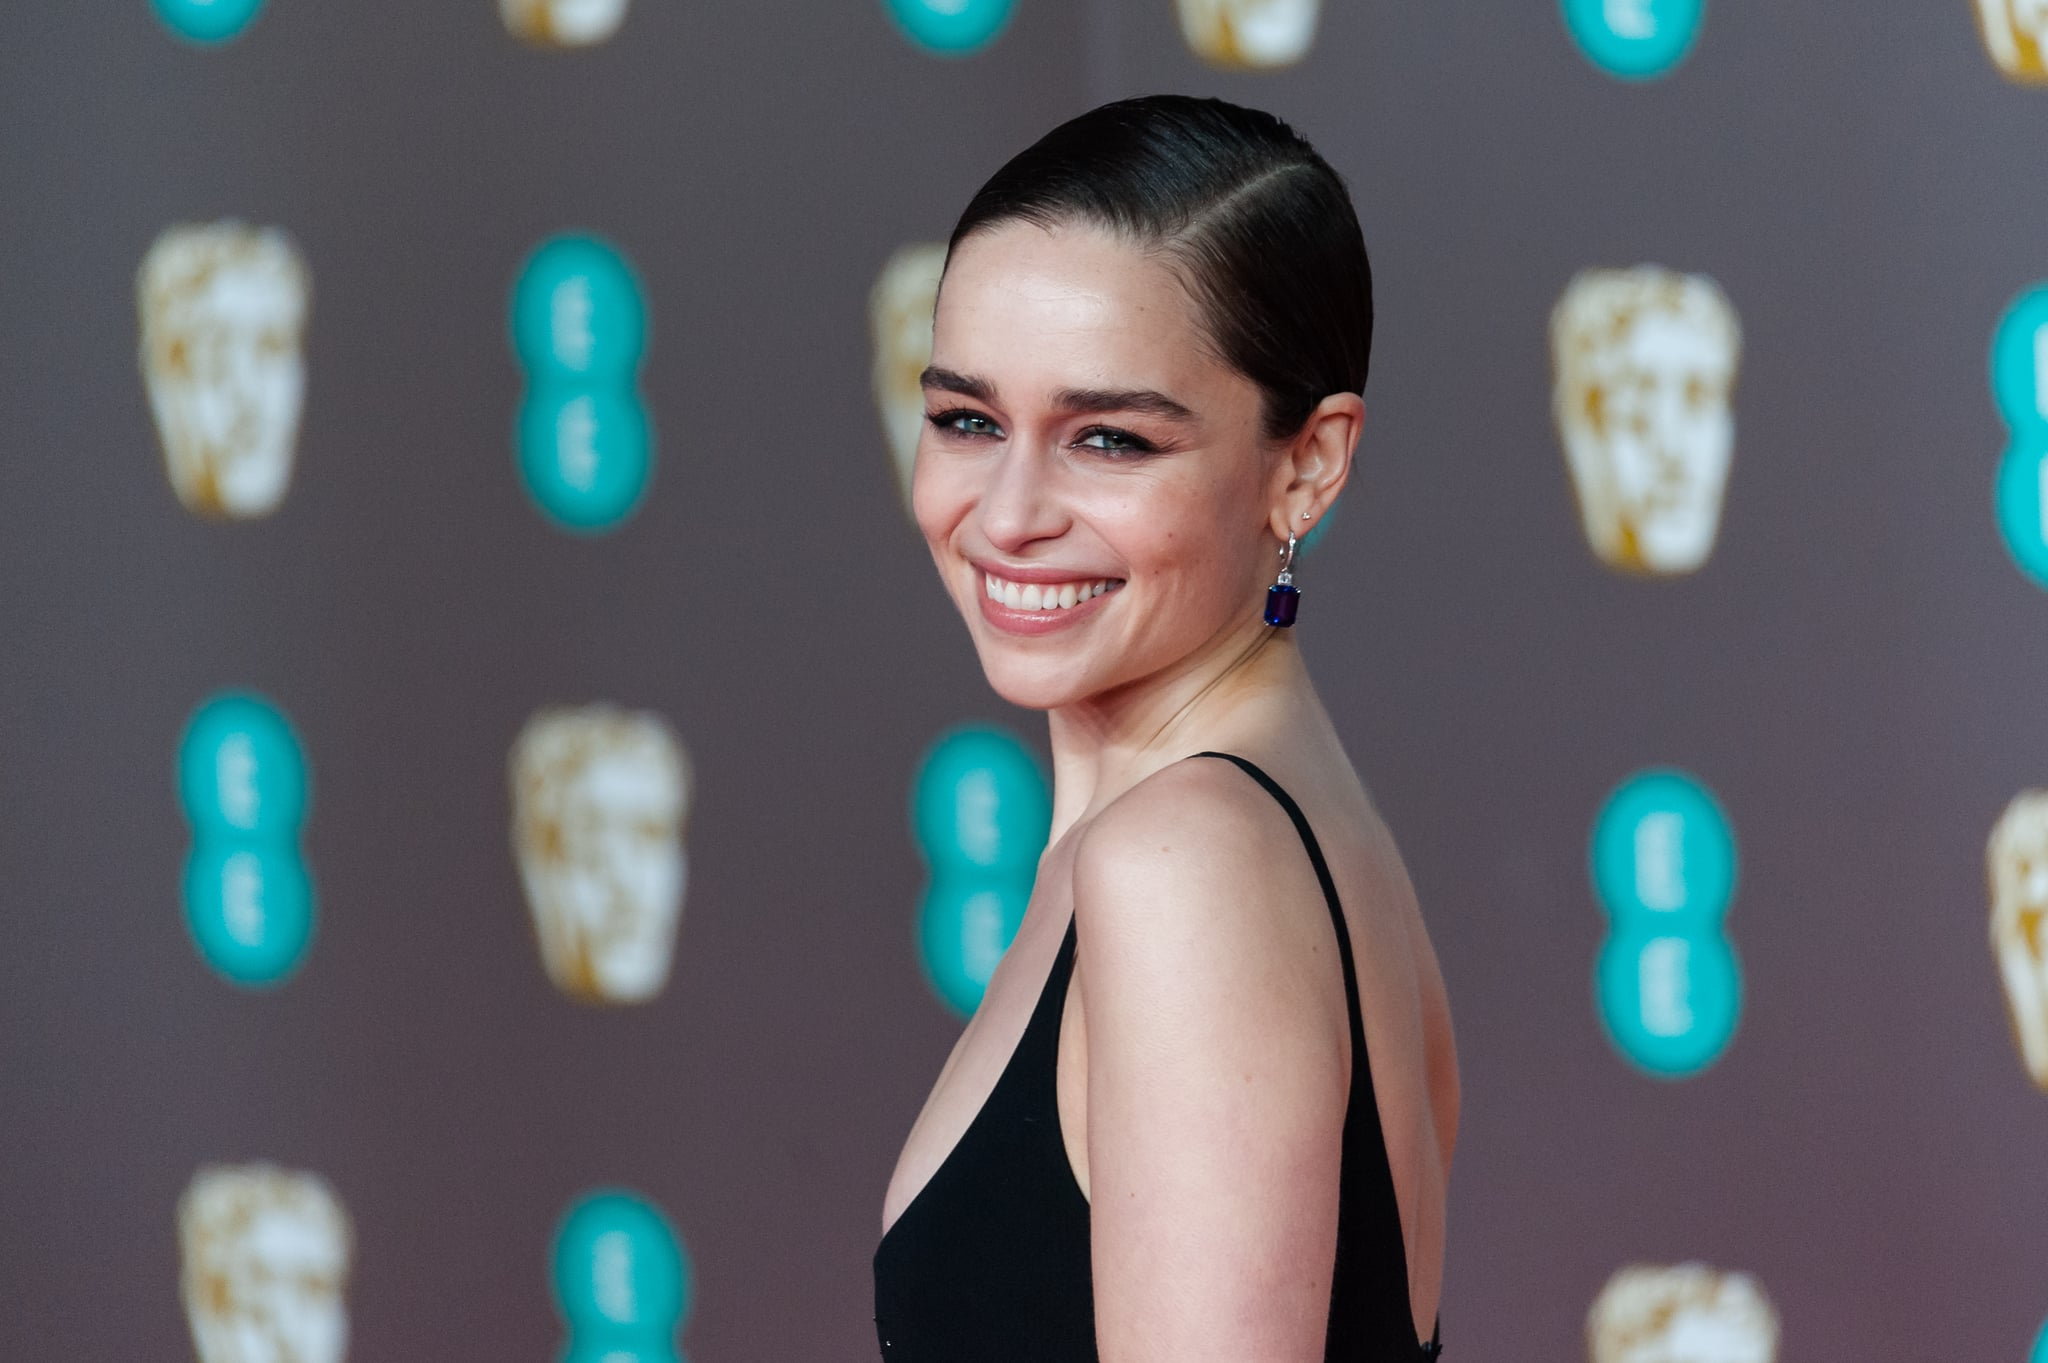 Emilia Clarke attends the EE British Academy Film Awards ceremony at the Royal Albert Hall on 02 February, 2020 in London, England. (Photo by WIktor Szymanowicz/NurPhoto via Getty Images)